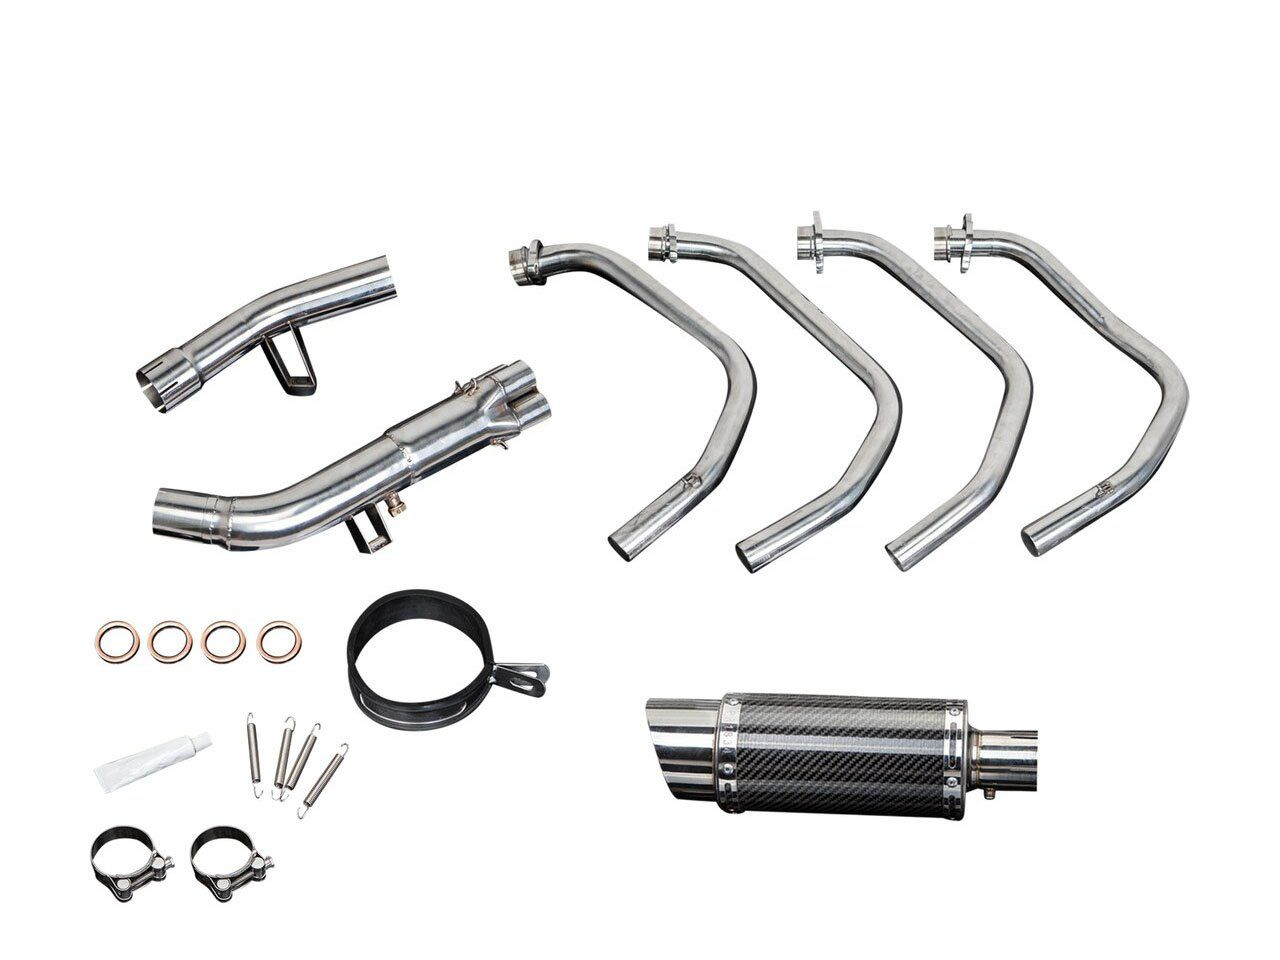 DELKEVIC Suzuki GSF1250 Bandit (07/09, 16) Full Exhaust System with Mini 8